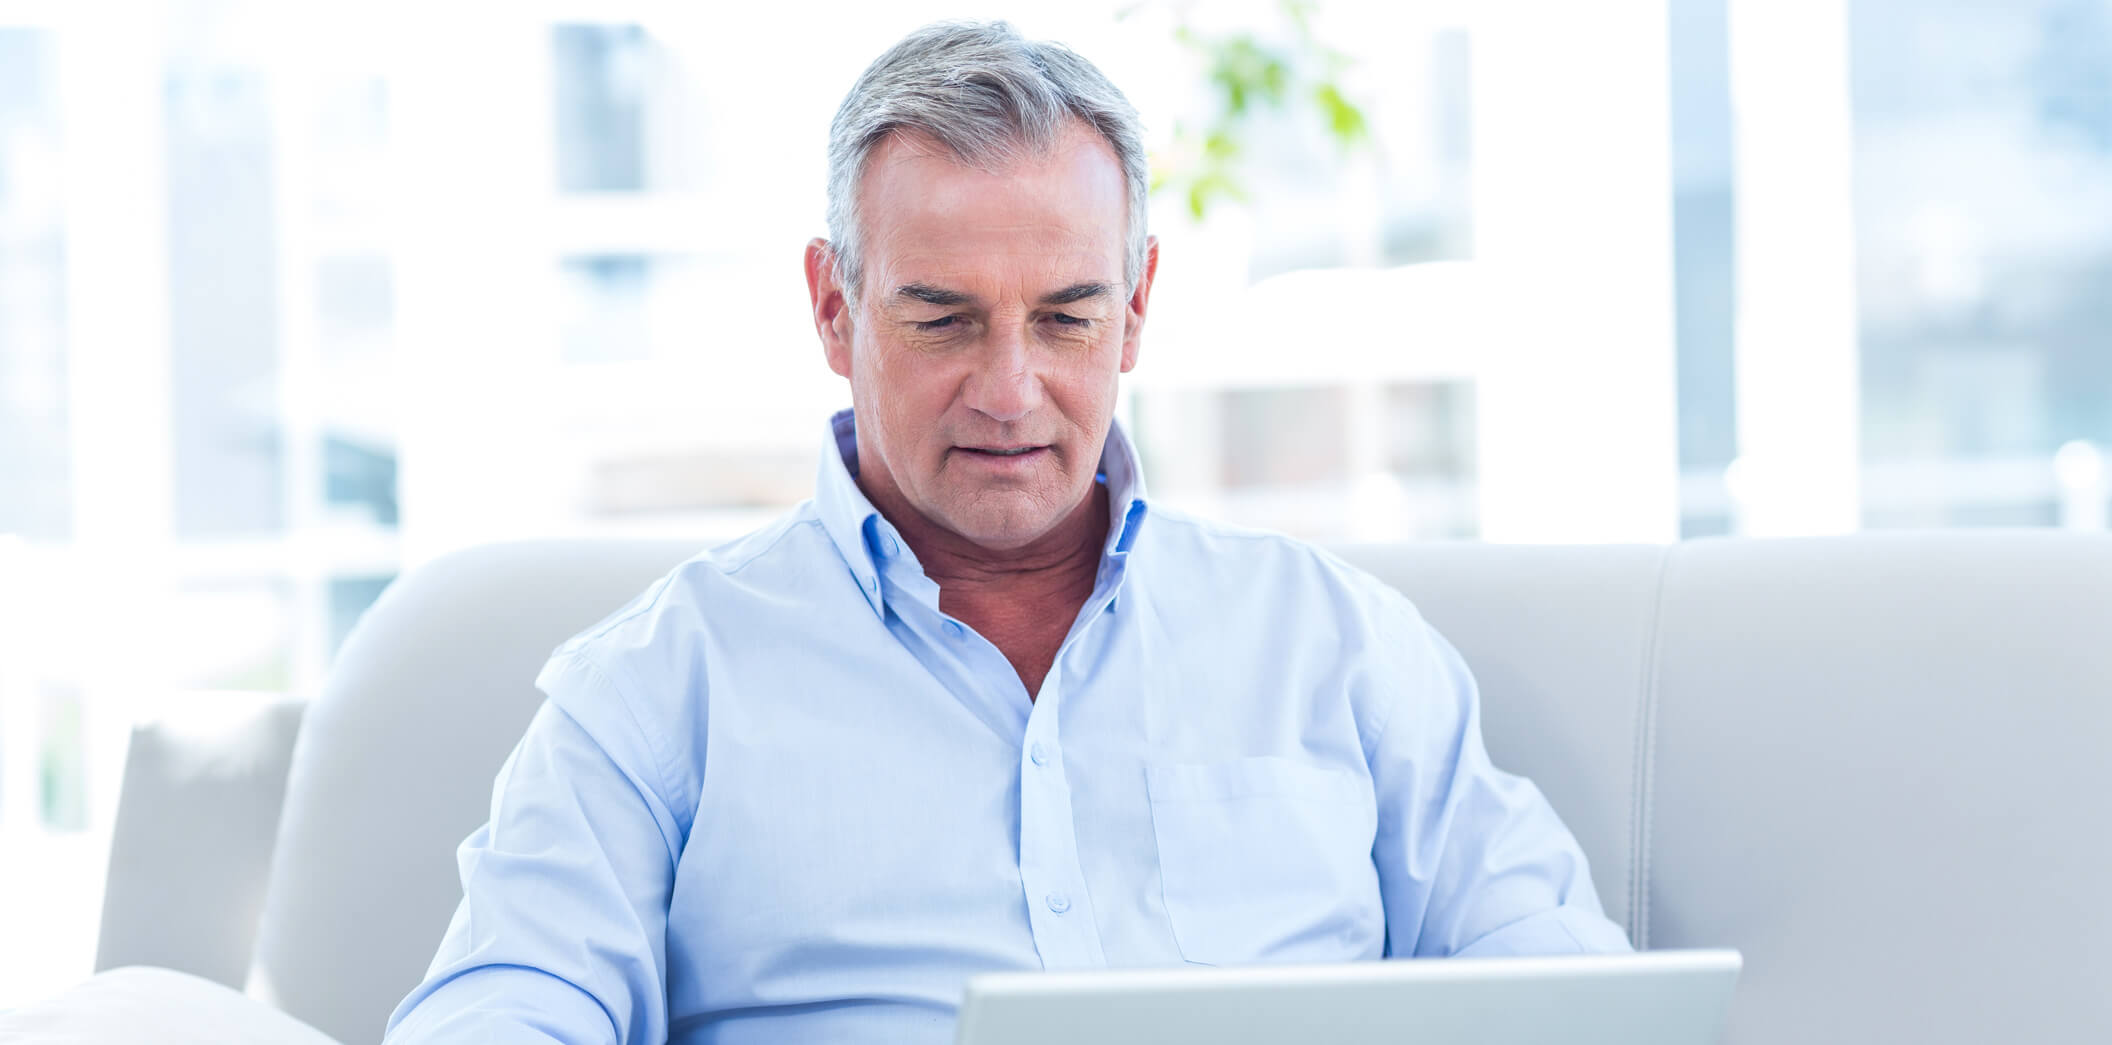 8 Valuable Financial Advising Tools